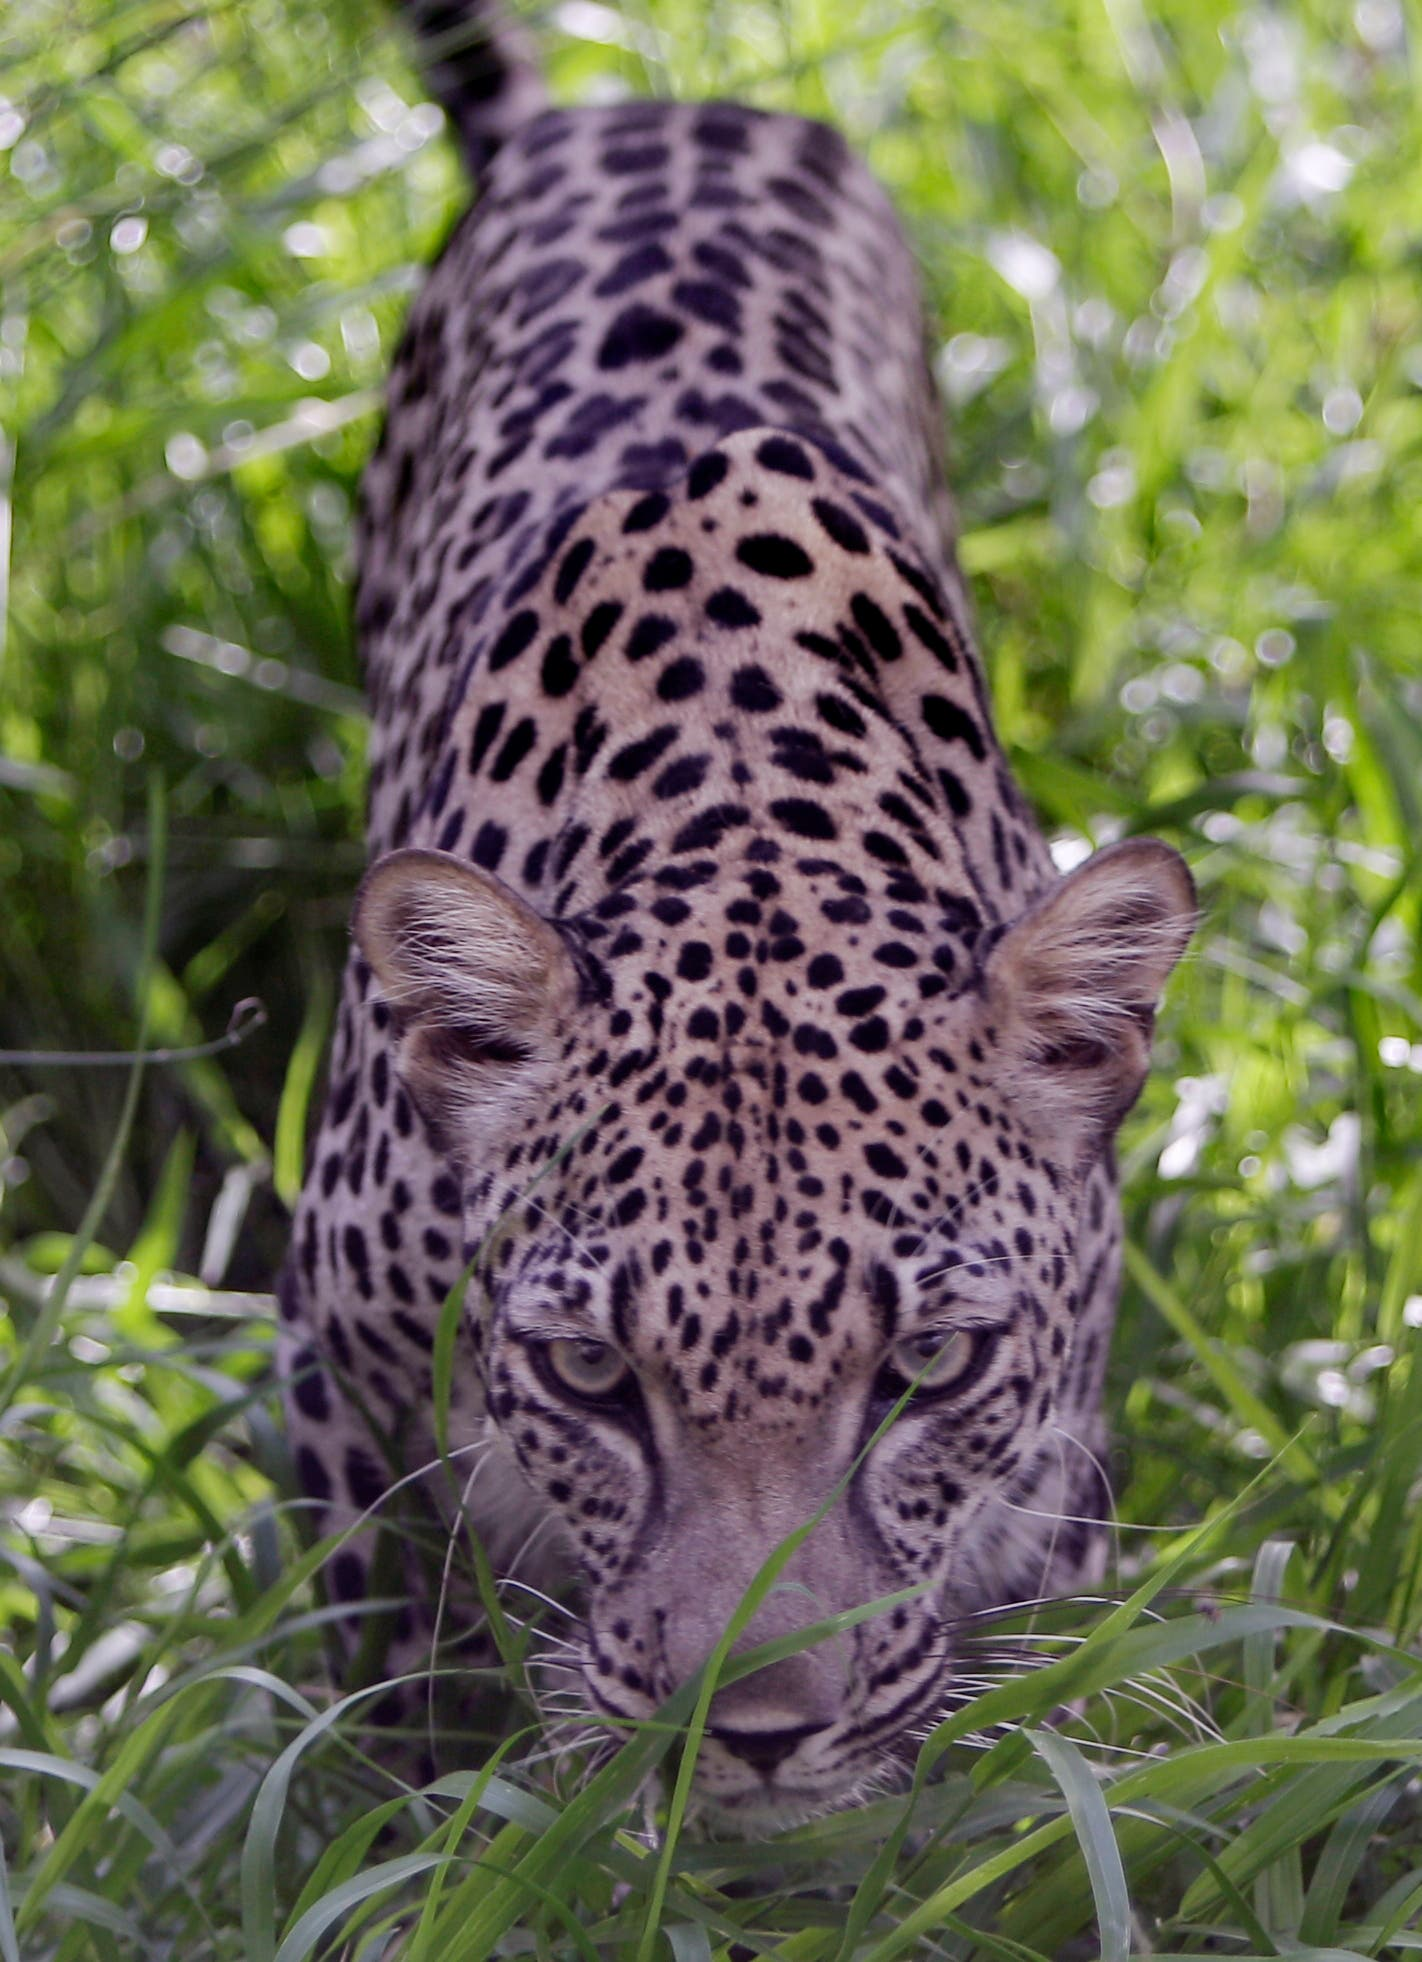 In this Tuesday, July 30, 2013 photo, a four year old Arabian leopard called Spoti approaches the camera at the Breeding Center for the Arabian Wildlife in Sharjah, United Arab Emirates. (File photo: AP)